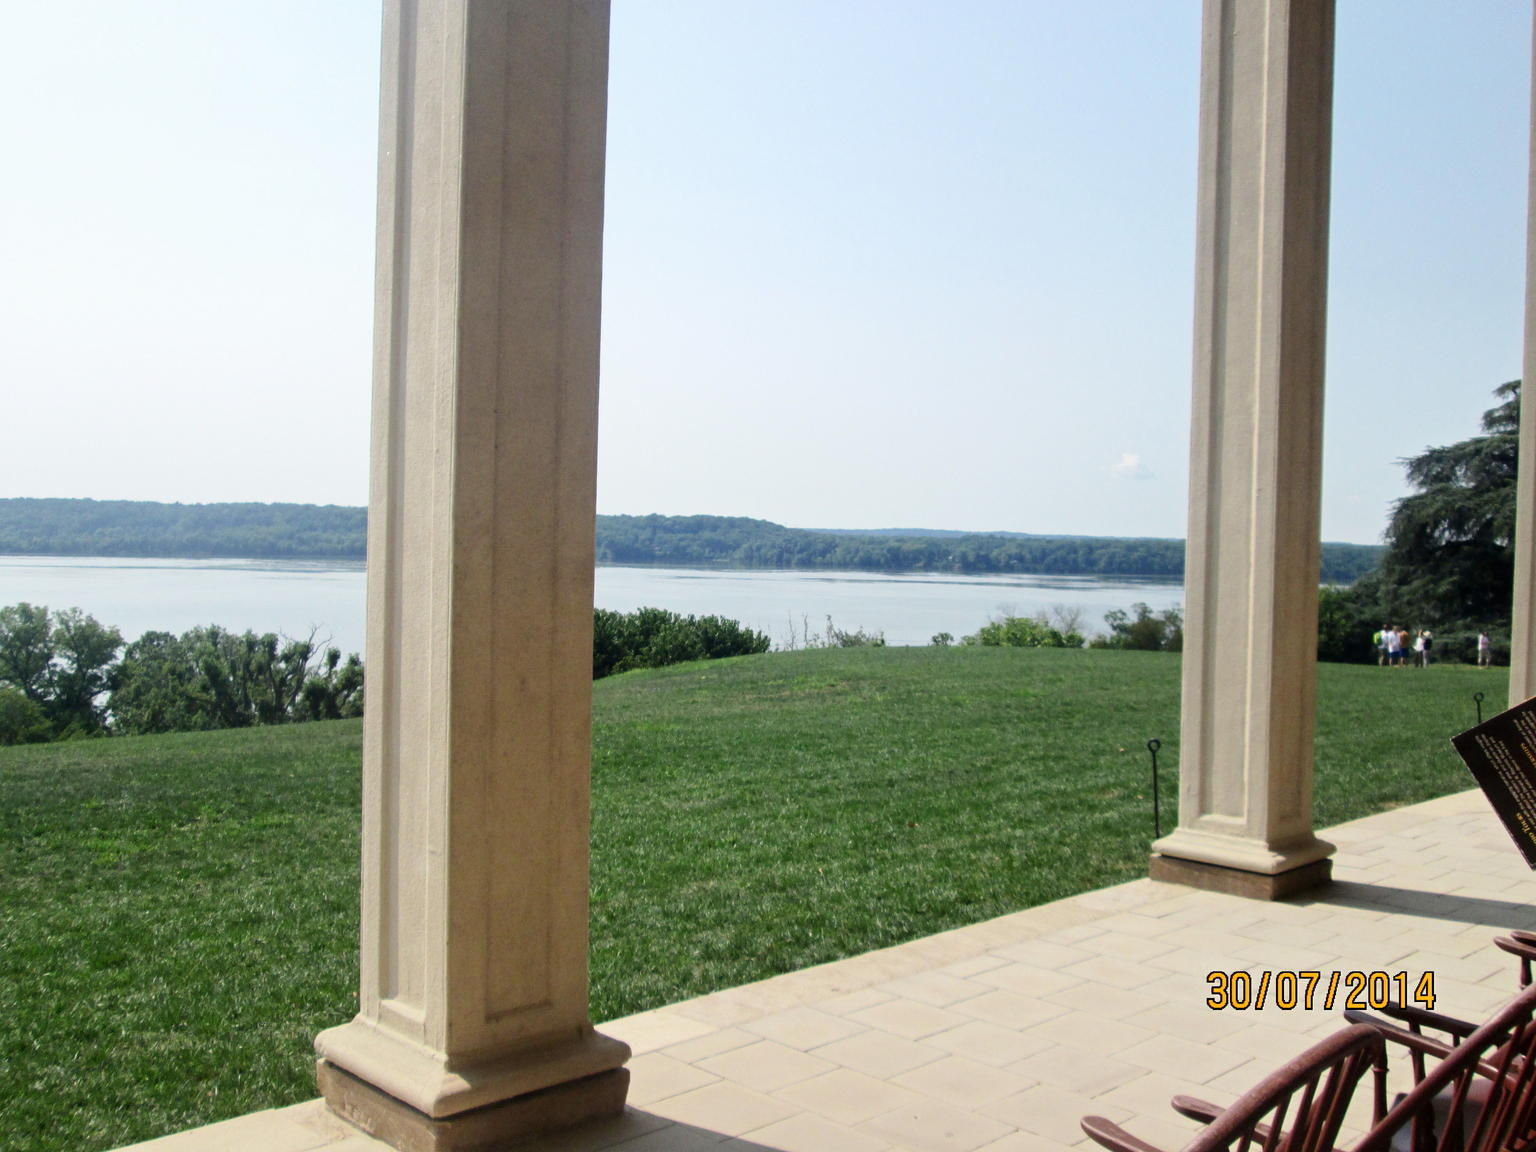 View from the back of Mount Vernon